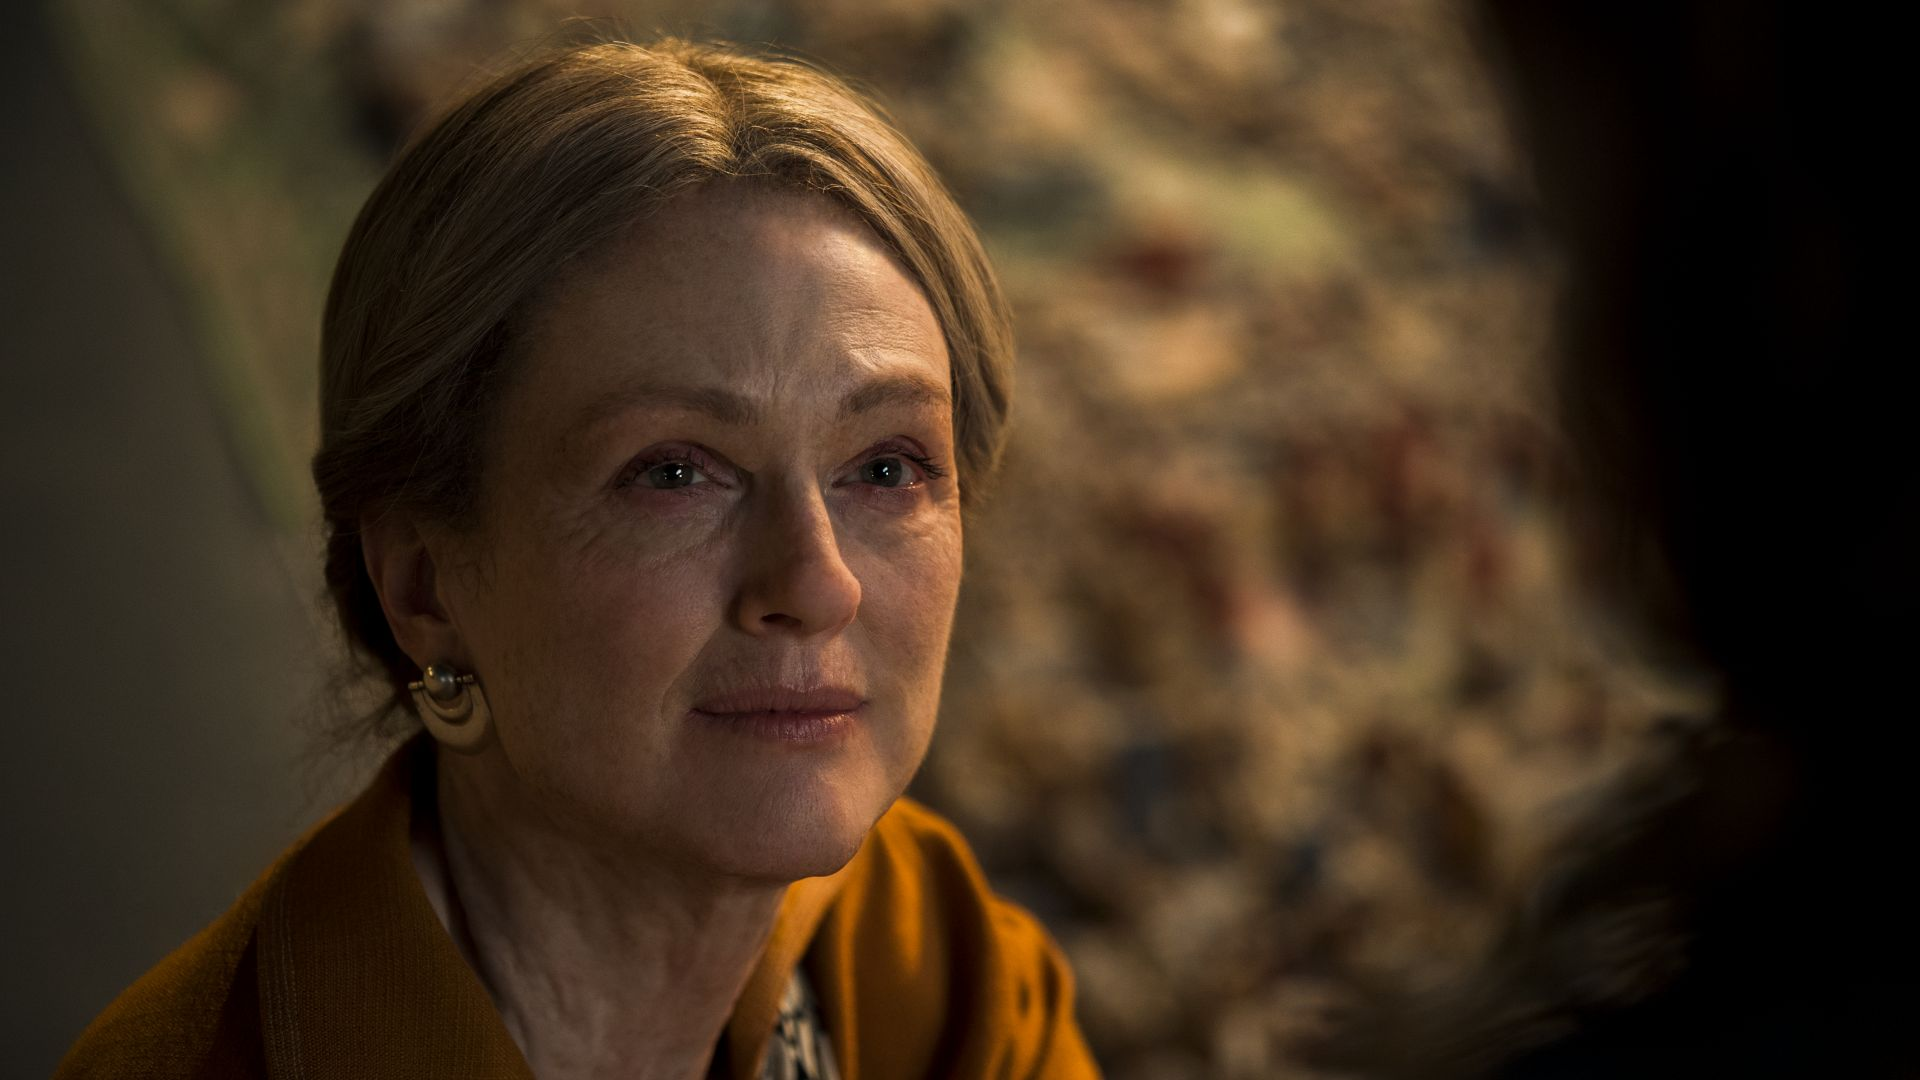 Мир, полный чудес, Джулианна Мур, Канны 2017, Wonderstruck, Julianne Moore, Cannes 2017 (horizontal)